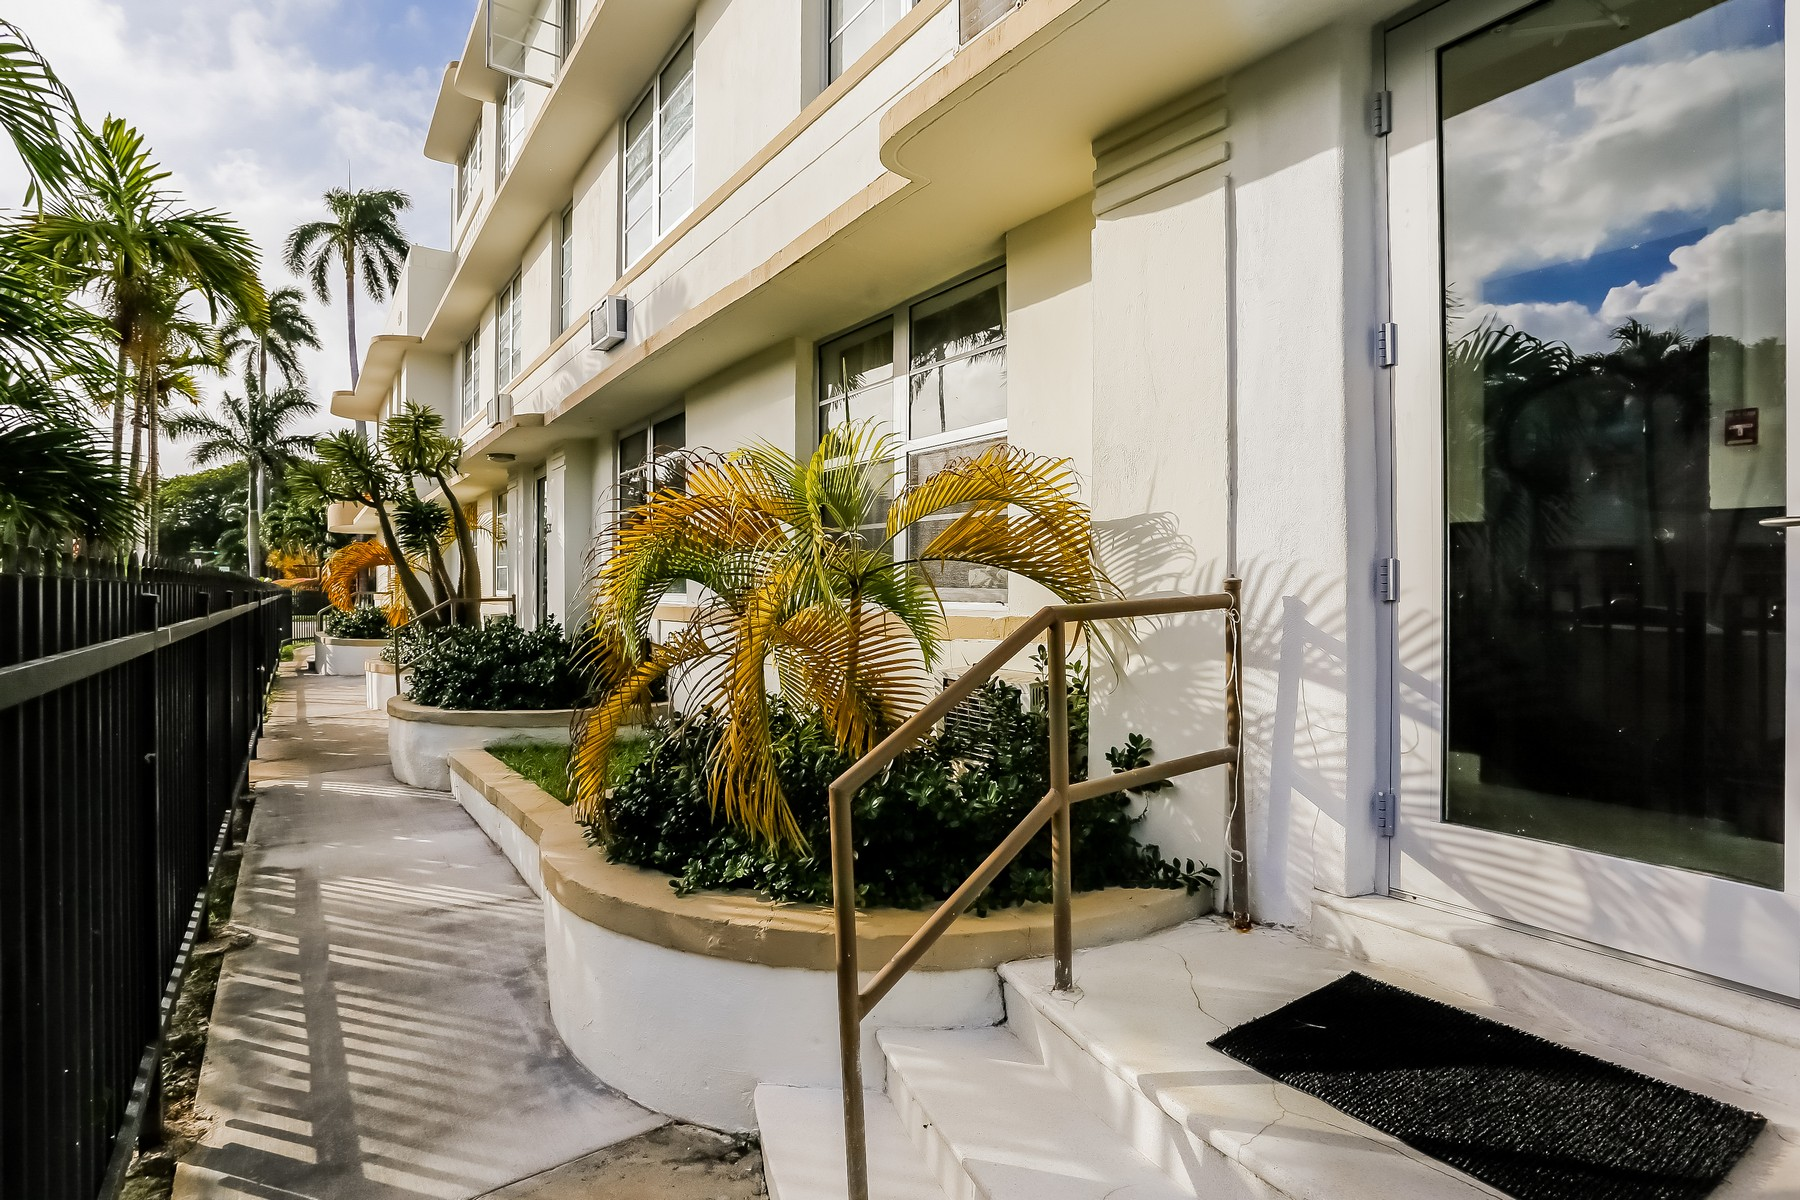 Other Residential for Sale at 529 15 Street Miami Beach, Florida 33139 United States